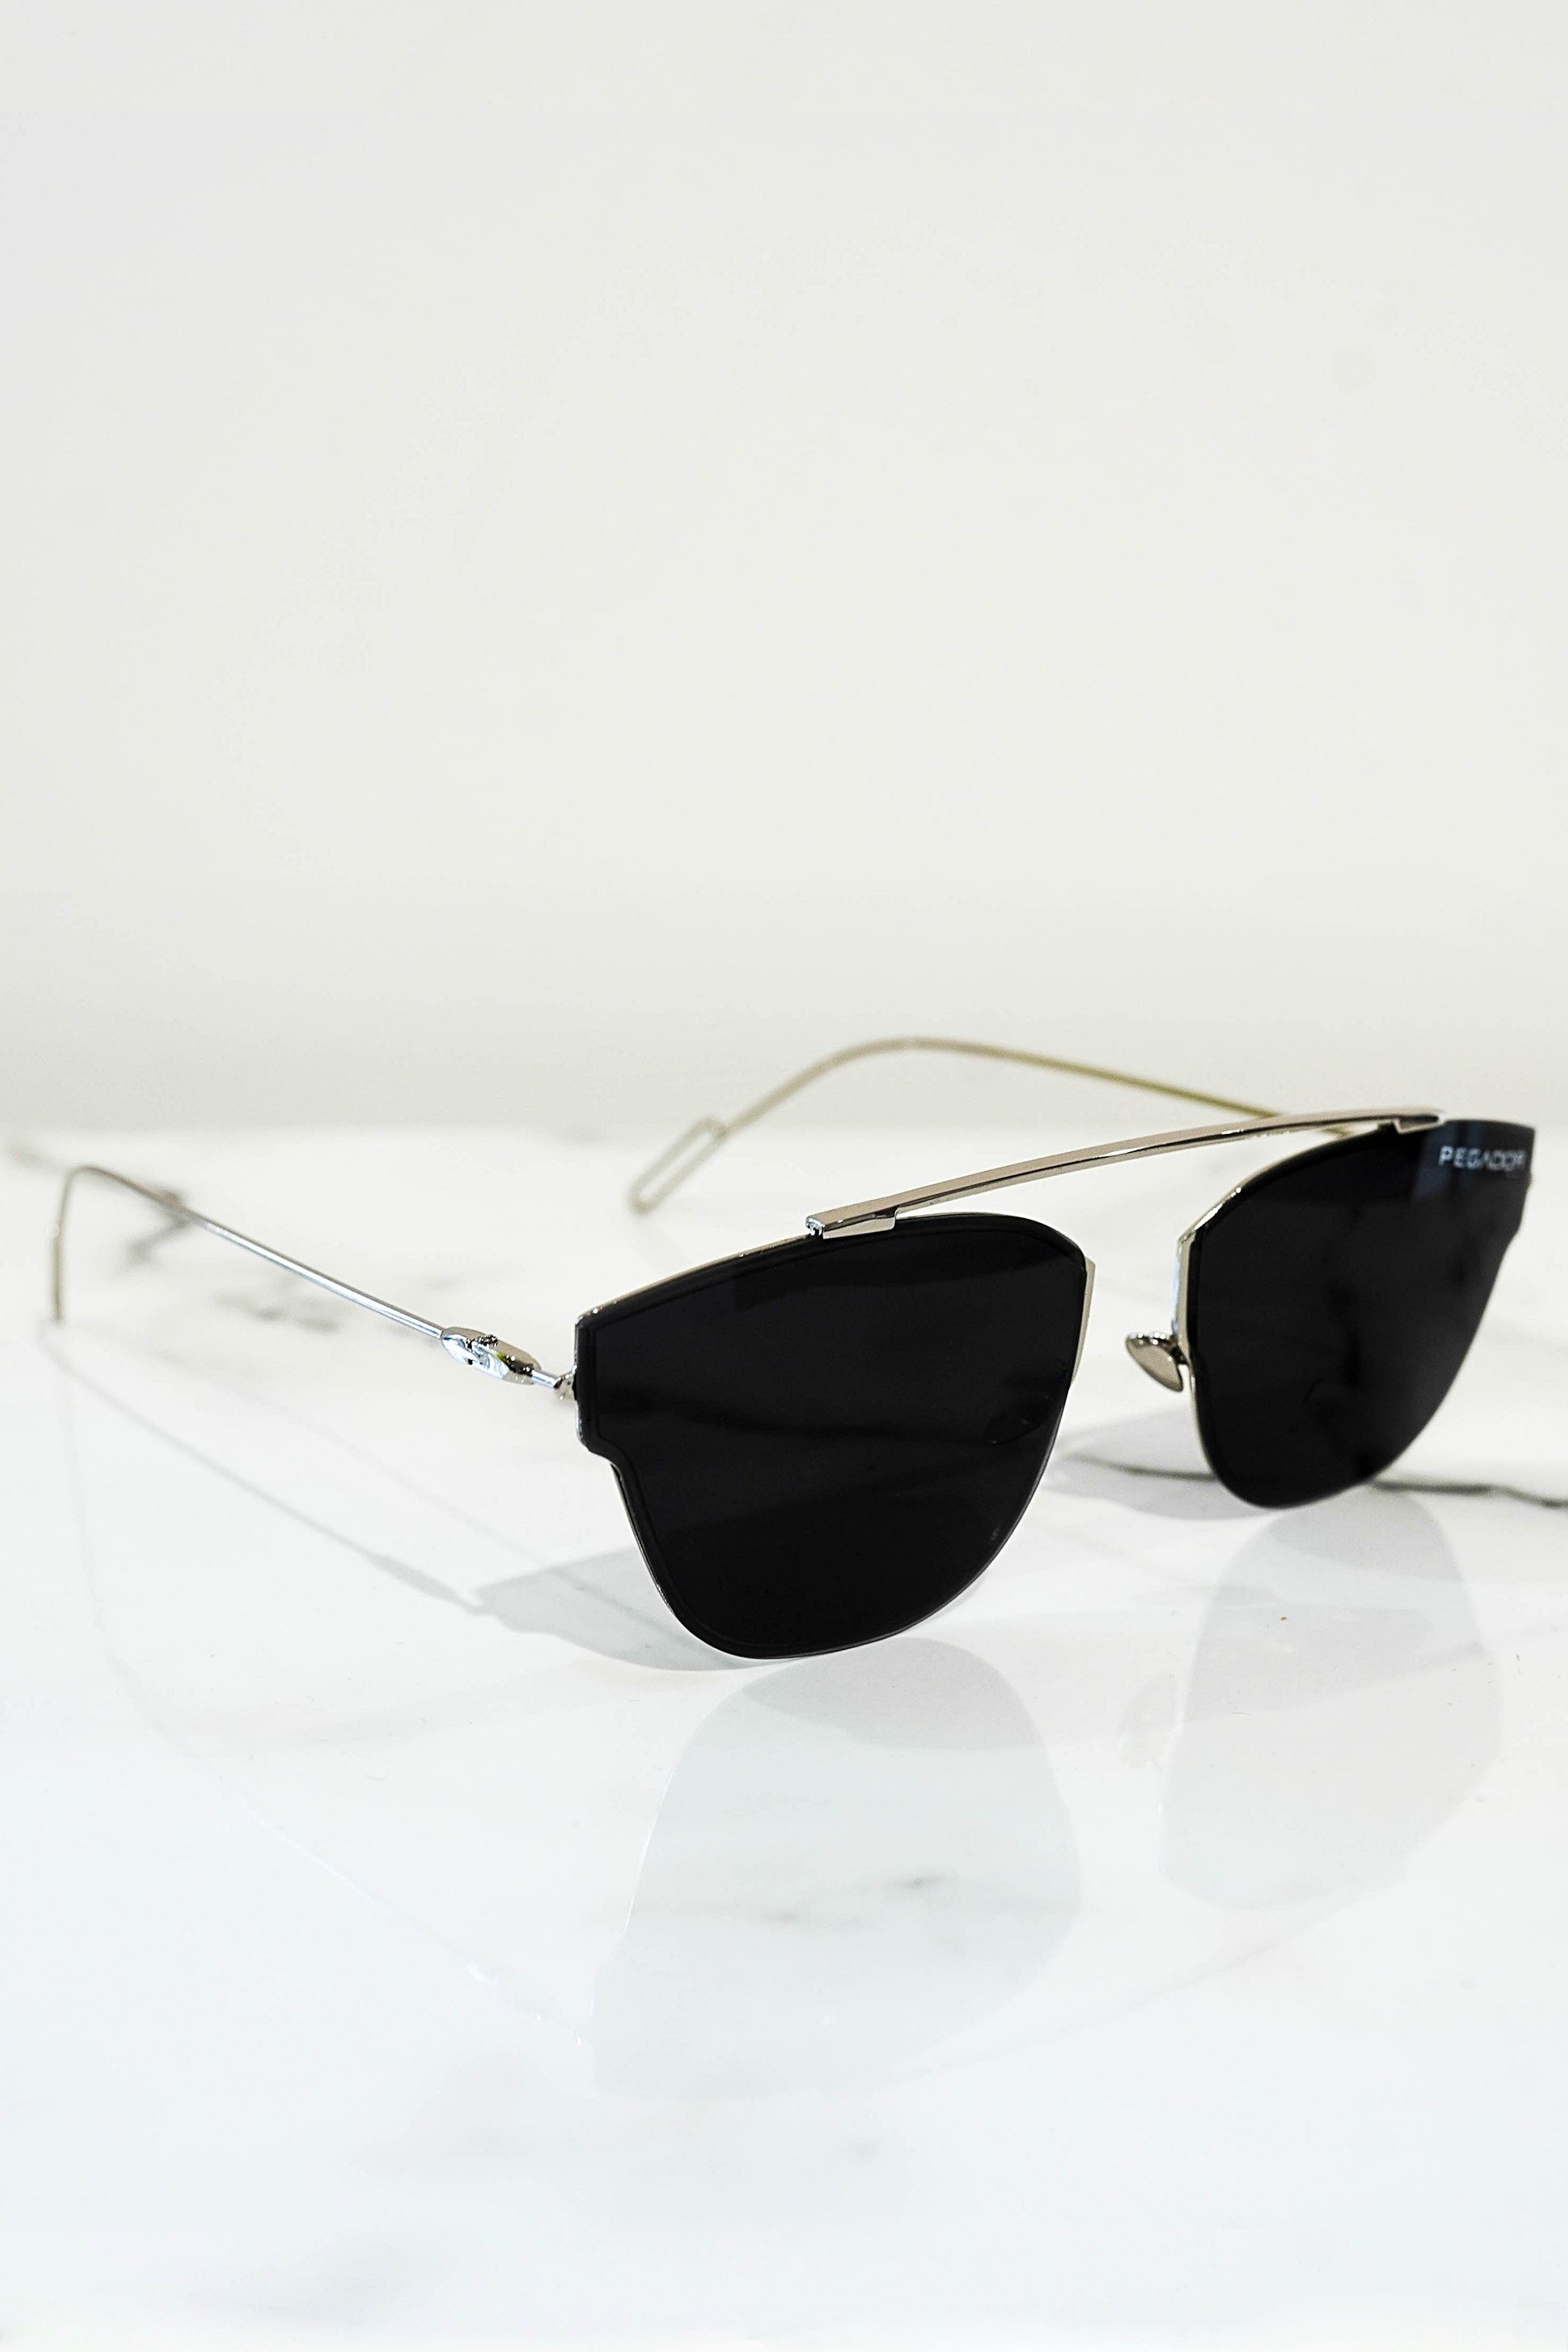 Logo sunglasses silver With dark lens